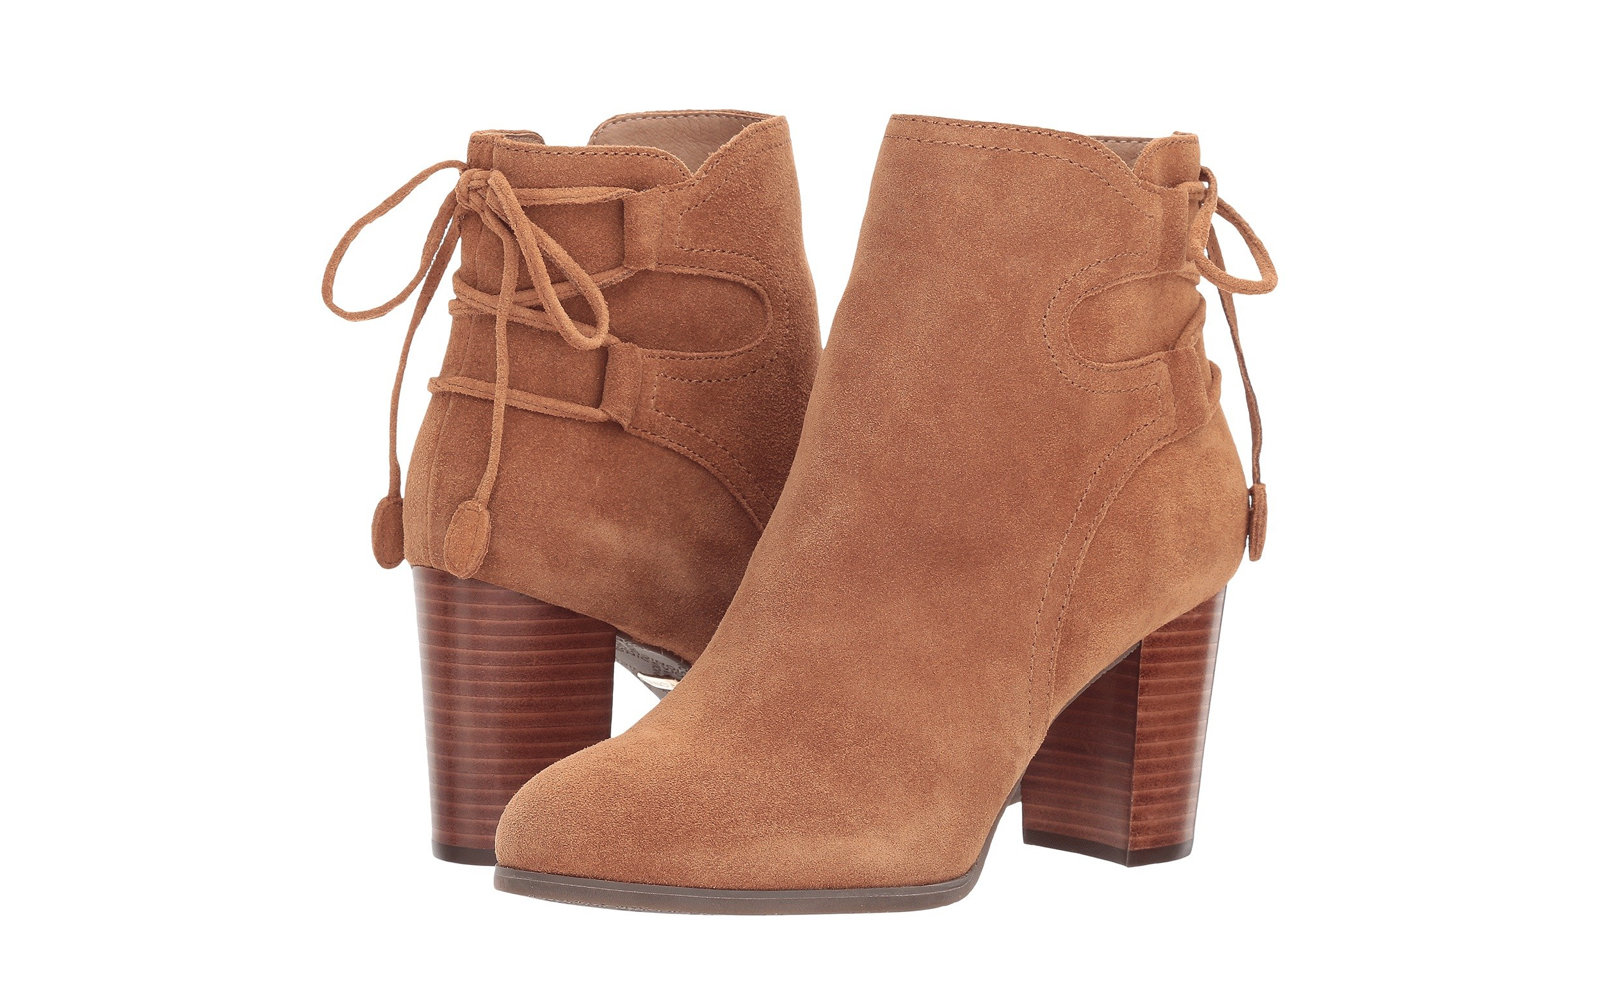 Vionic 'Ronnie' Ankle Boot